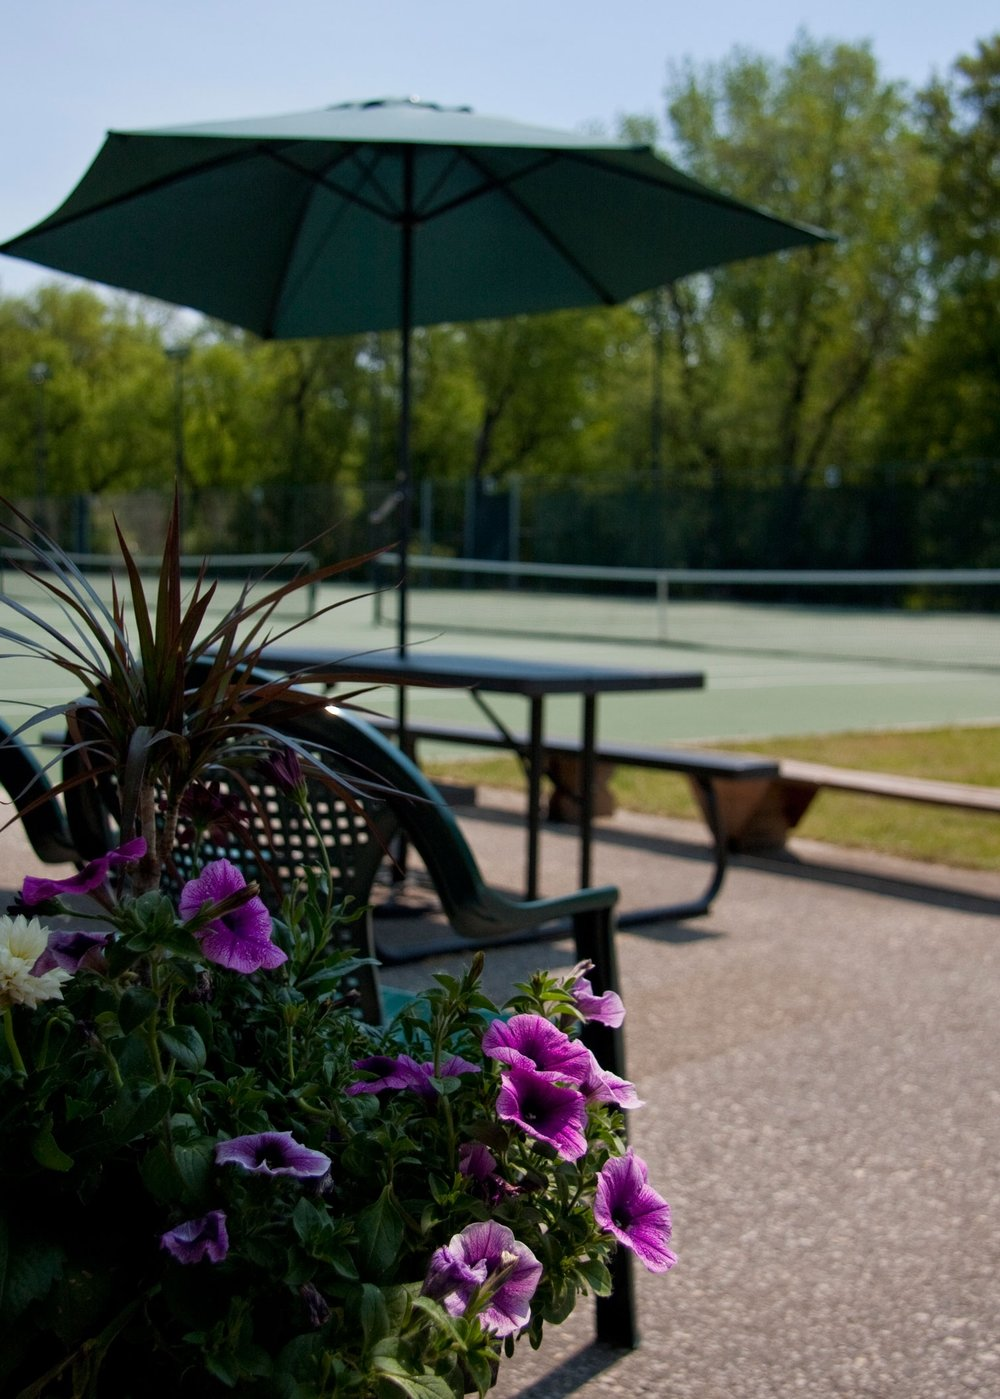 Winnipeg Lawn Tennis Club is a seasonal tennis facility with a large selection of activities including leagues, ladders, clinics, tournaments and casual play from May to October (weather permitting). - We have programs for players at all levels. Not sure what level you are? Consult with our Tennis Pro.